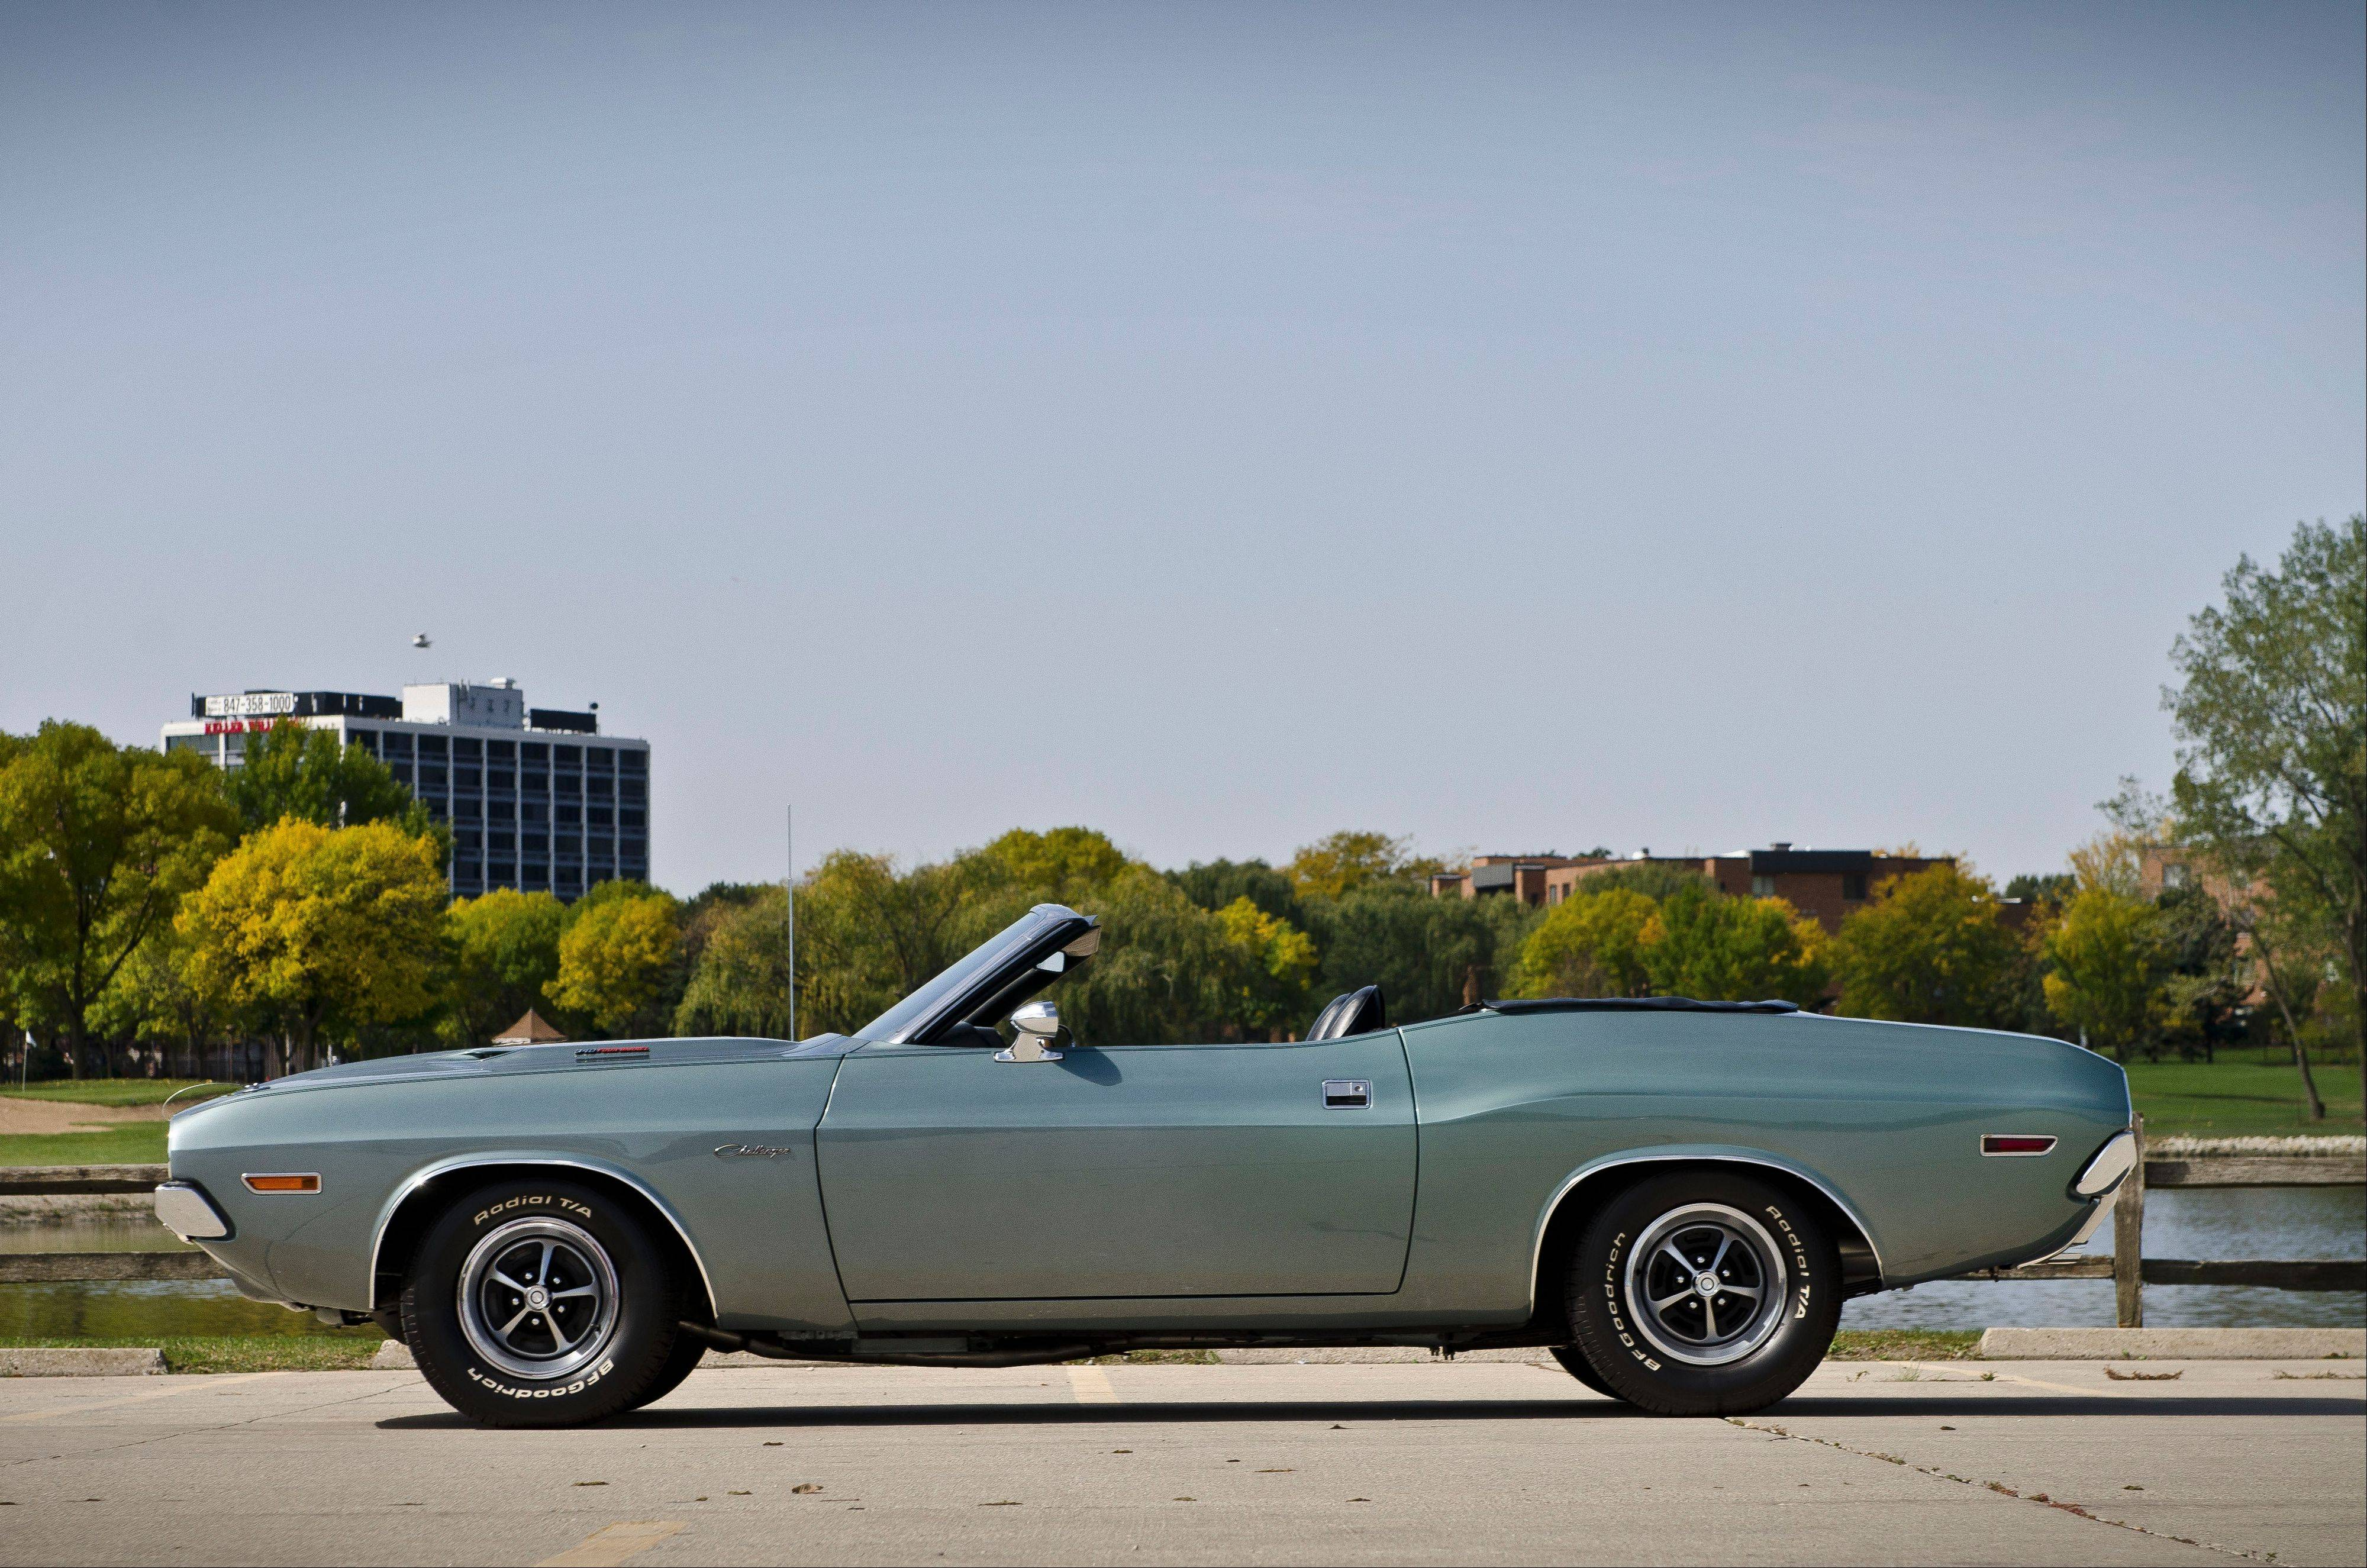 Hane used old stock parts, including fenders he purchased in the 1970s, to restore his Challenger.